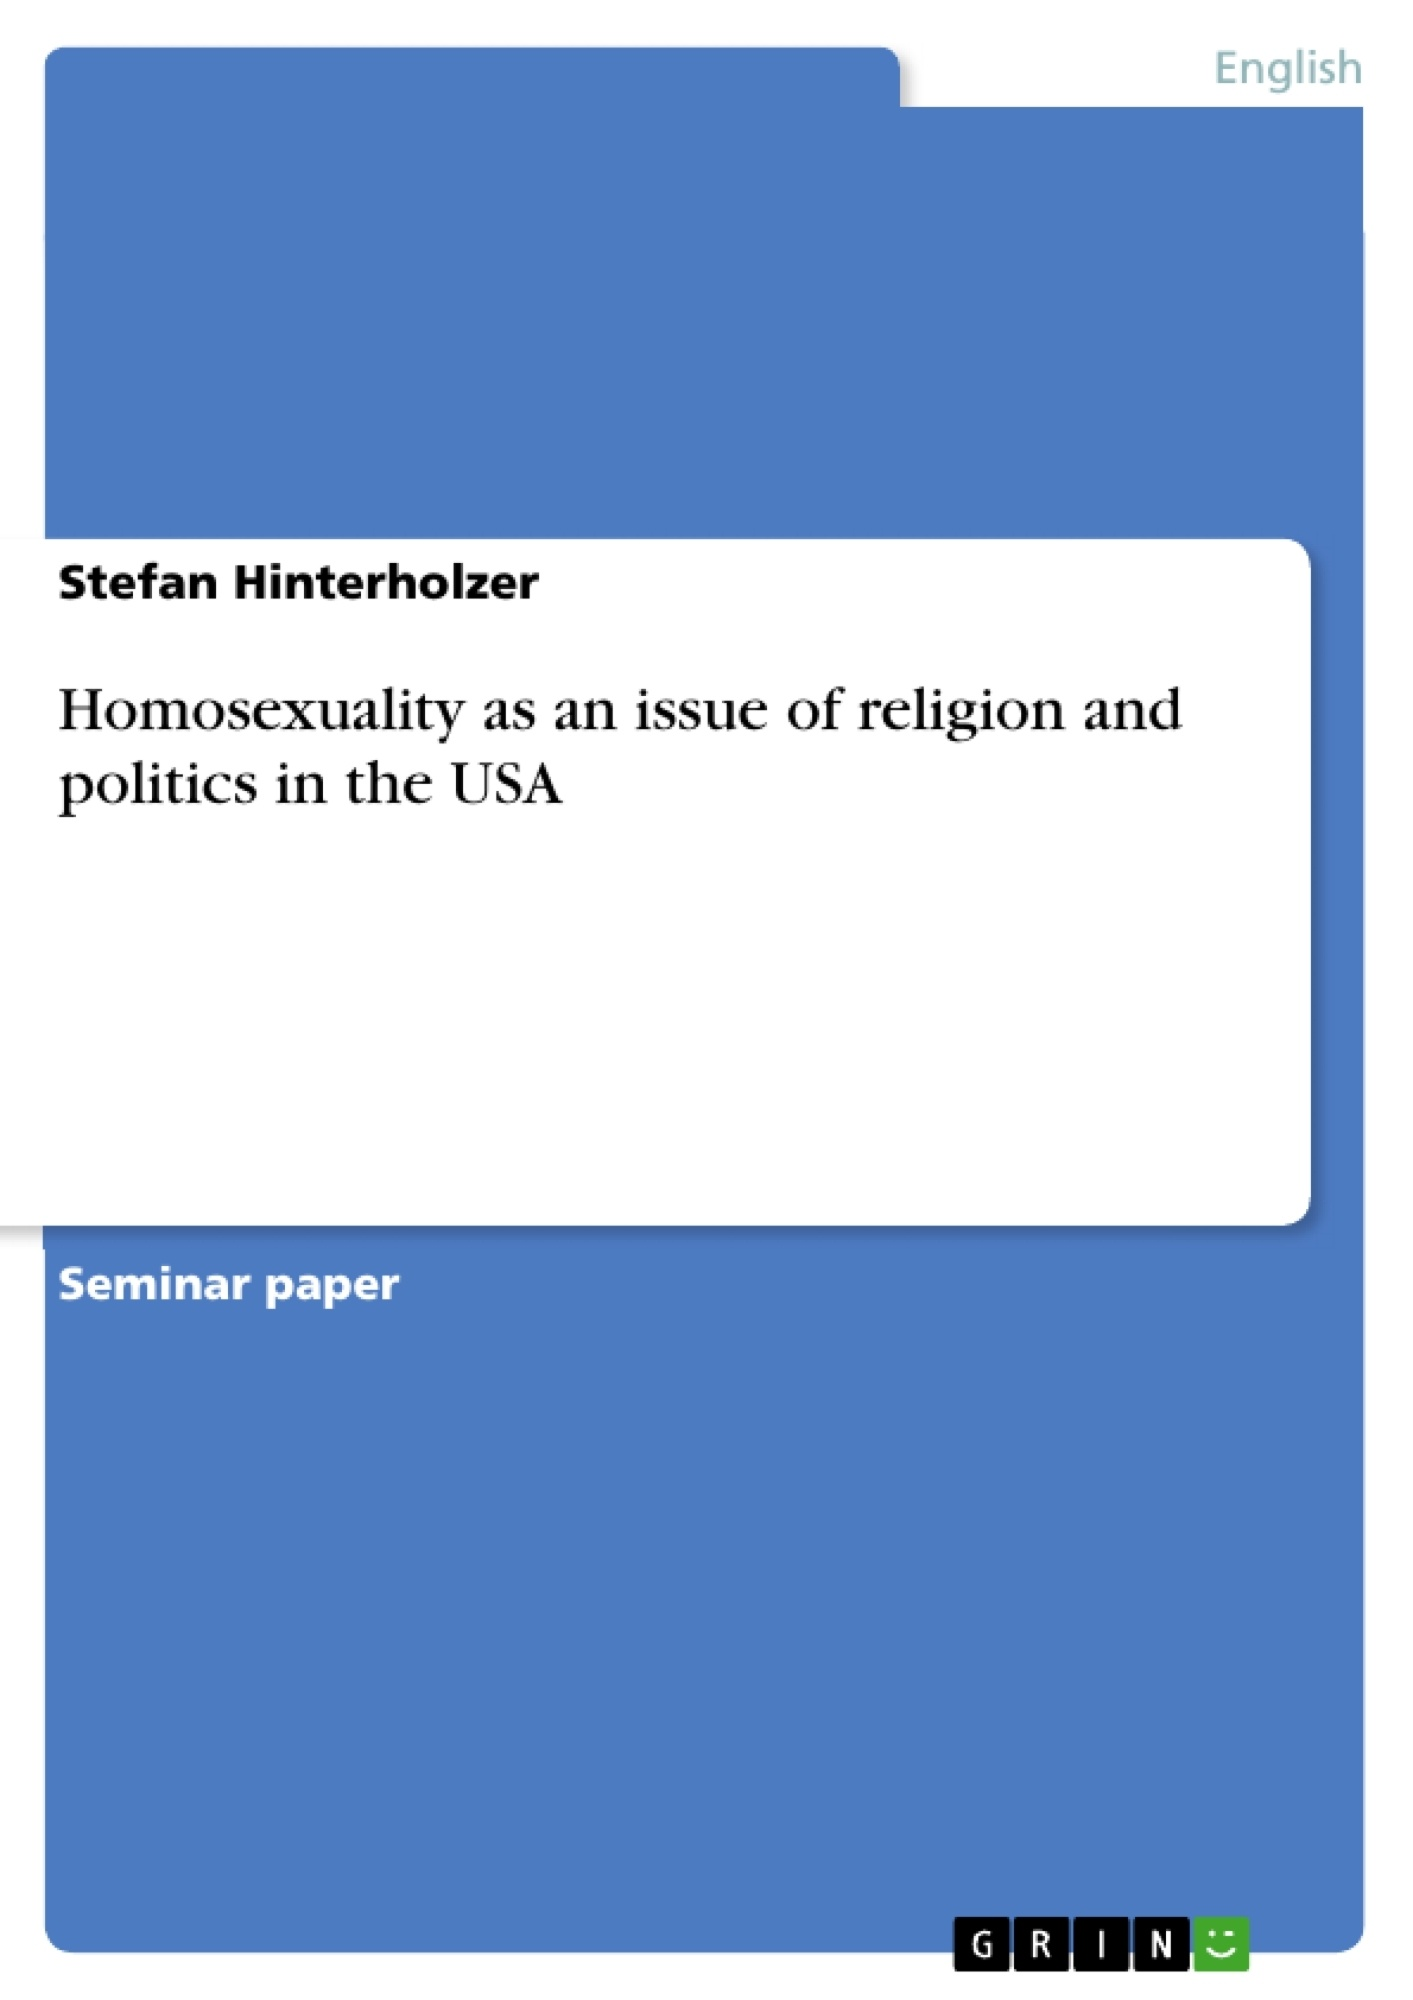 Title: Homosexuality as an issue of religion and politics in the USA